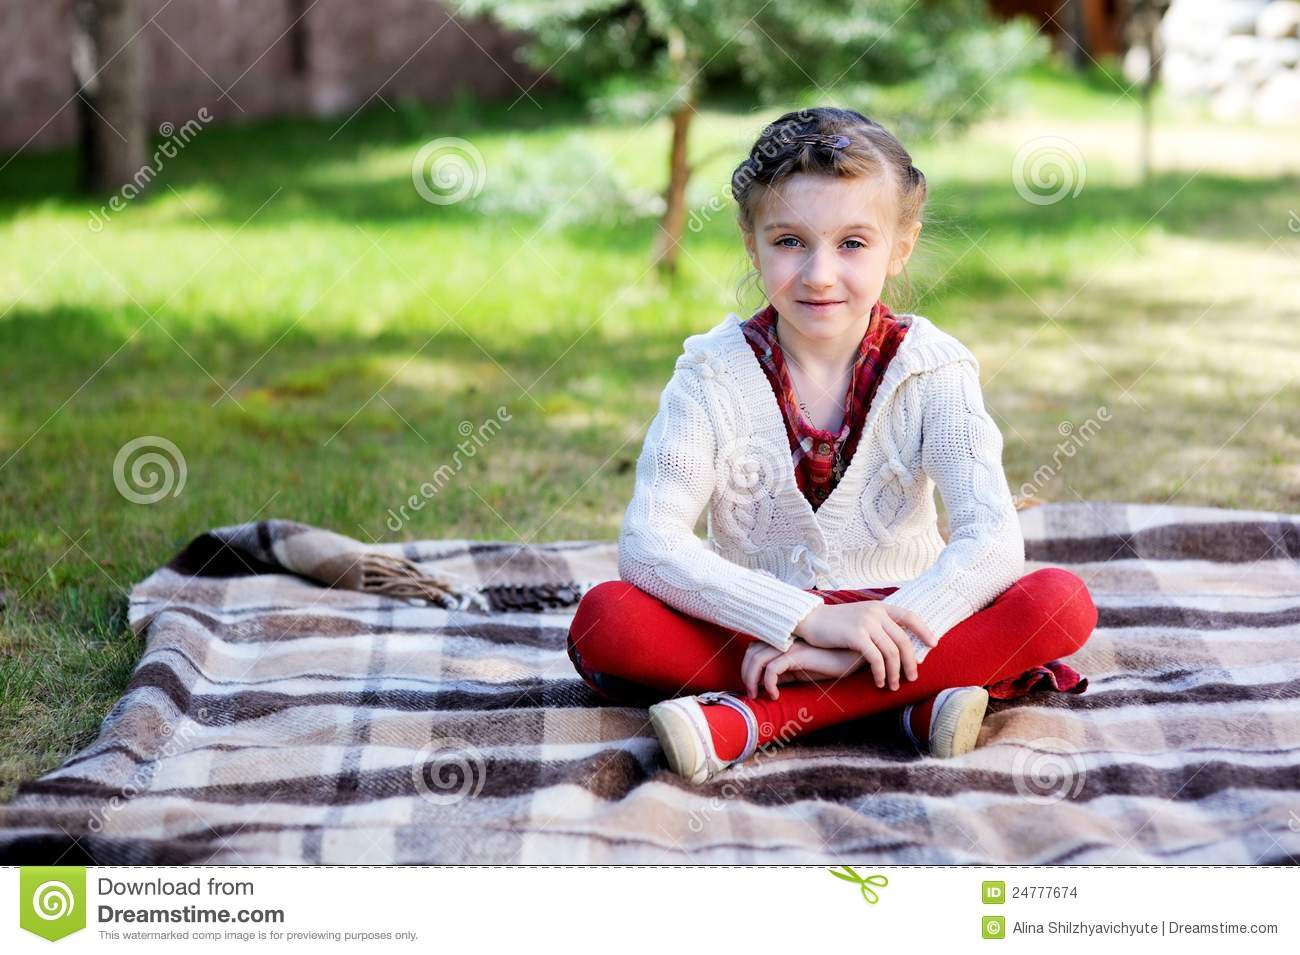 Child Girl Sitting On Plaid In A Garden Stock Images